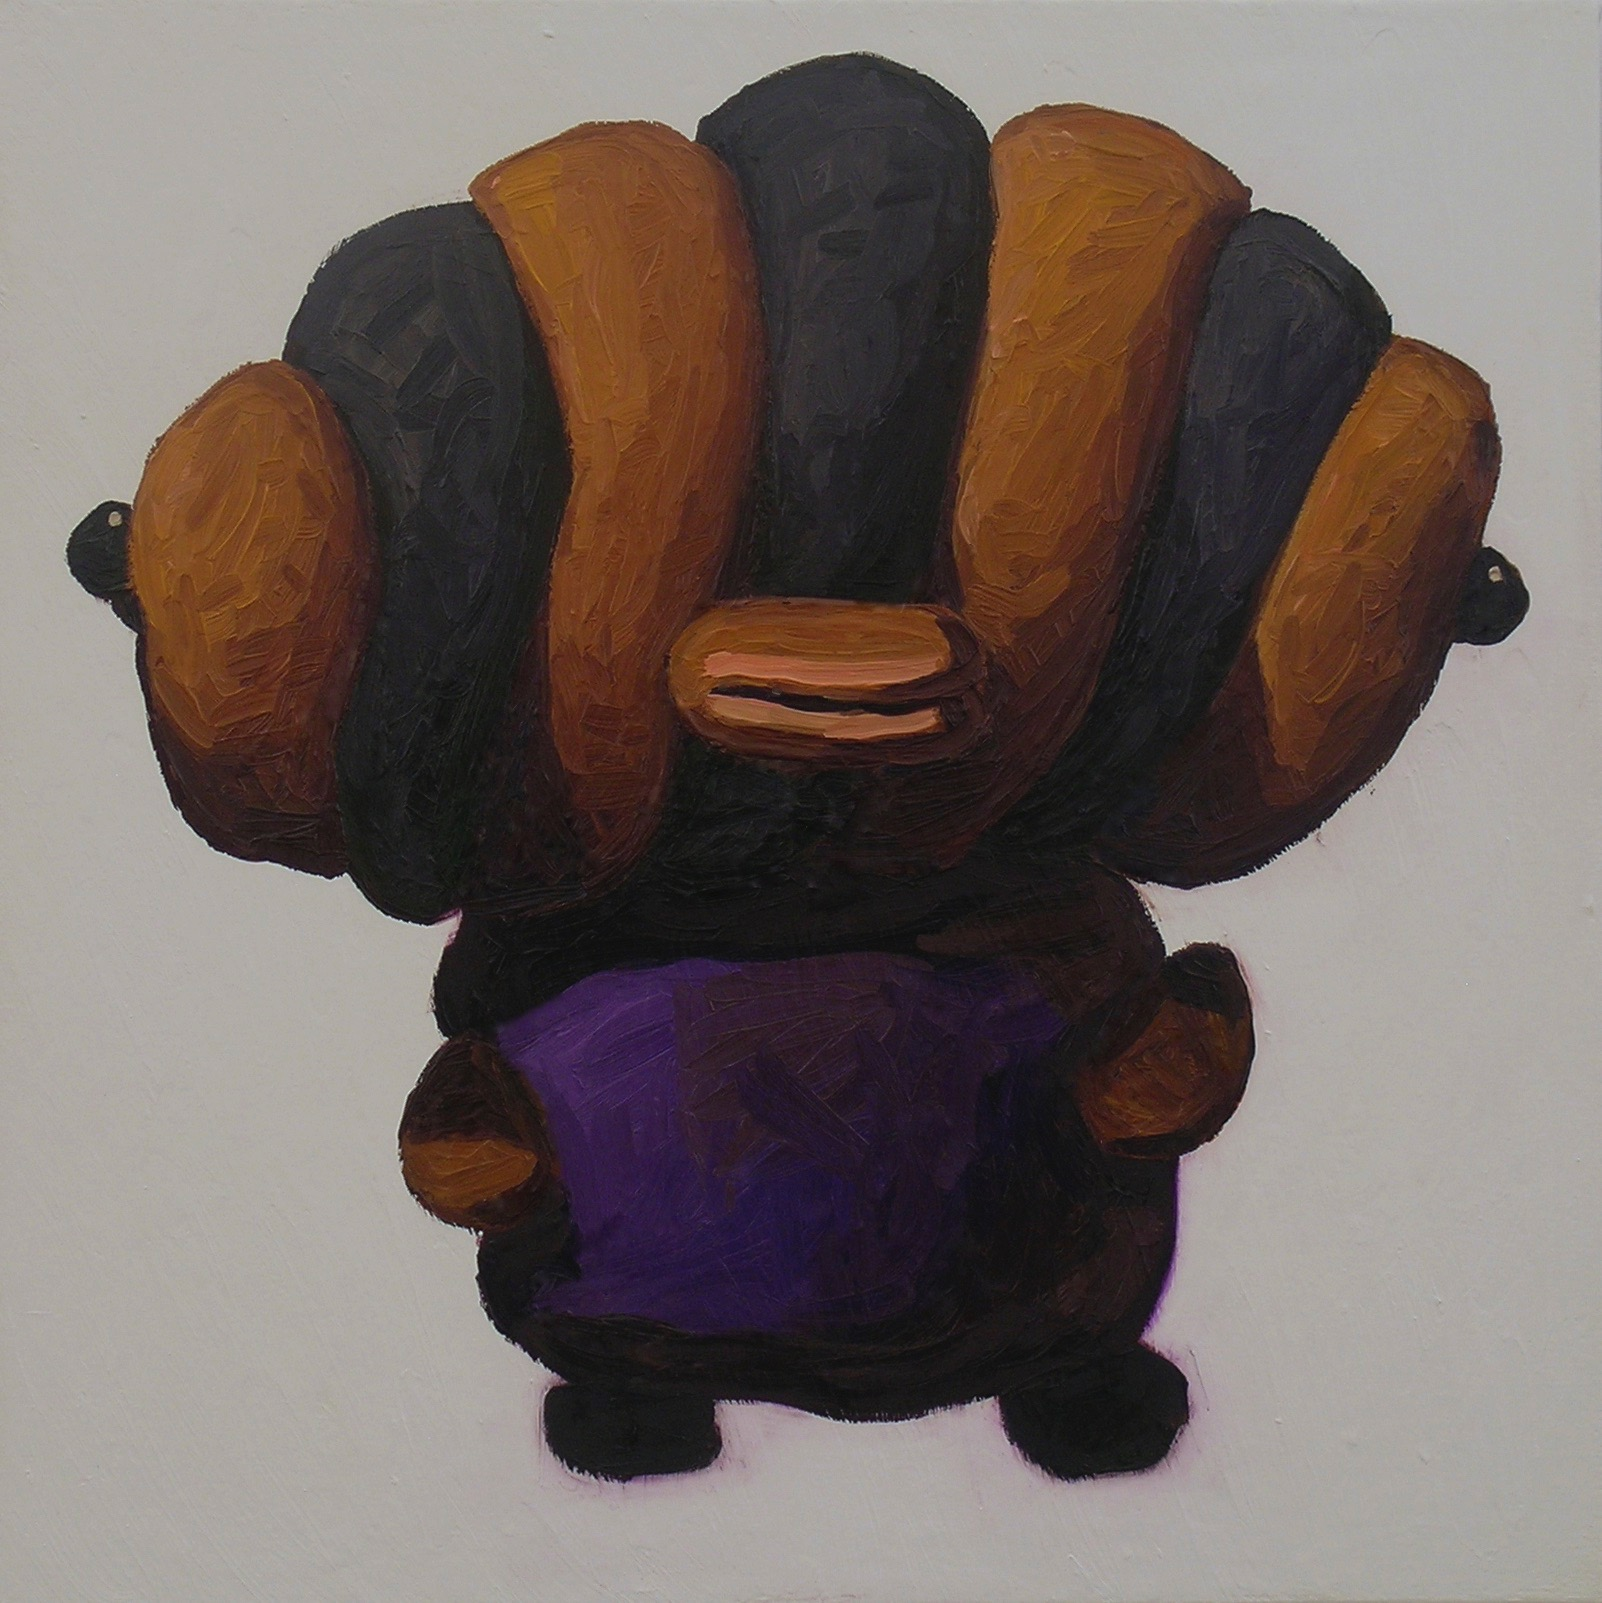 Peter Opheim   Croissant Boy   2013  Oil on canvas  Signed, titled, and dated by the artist,  verso   22 x 22 inches